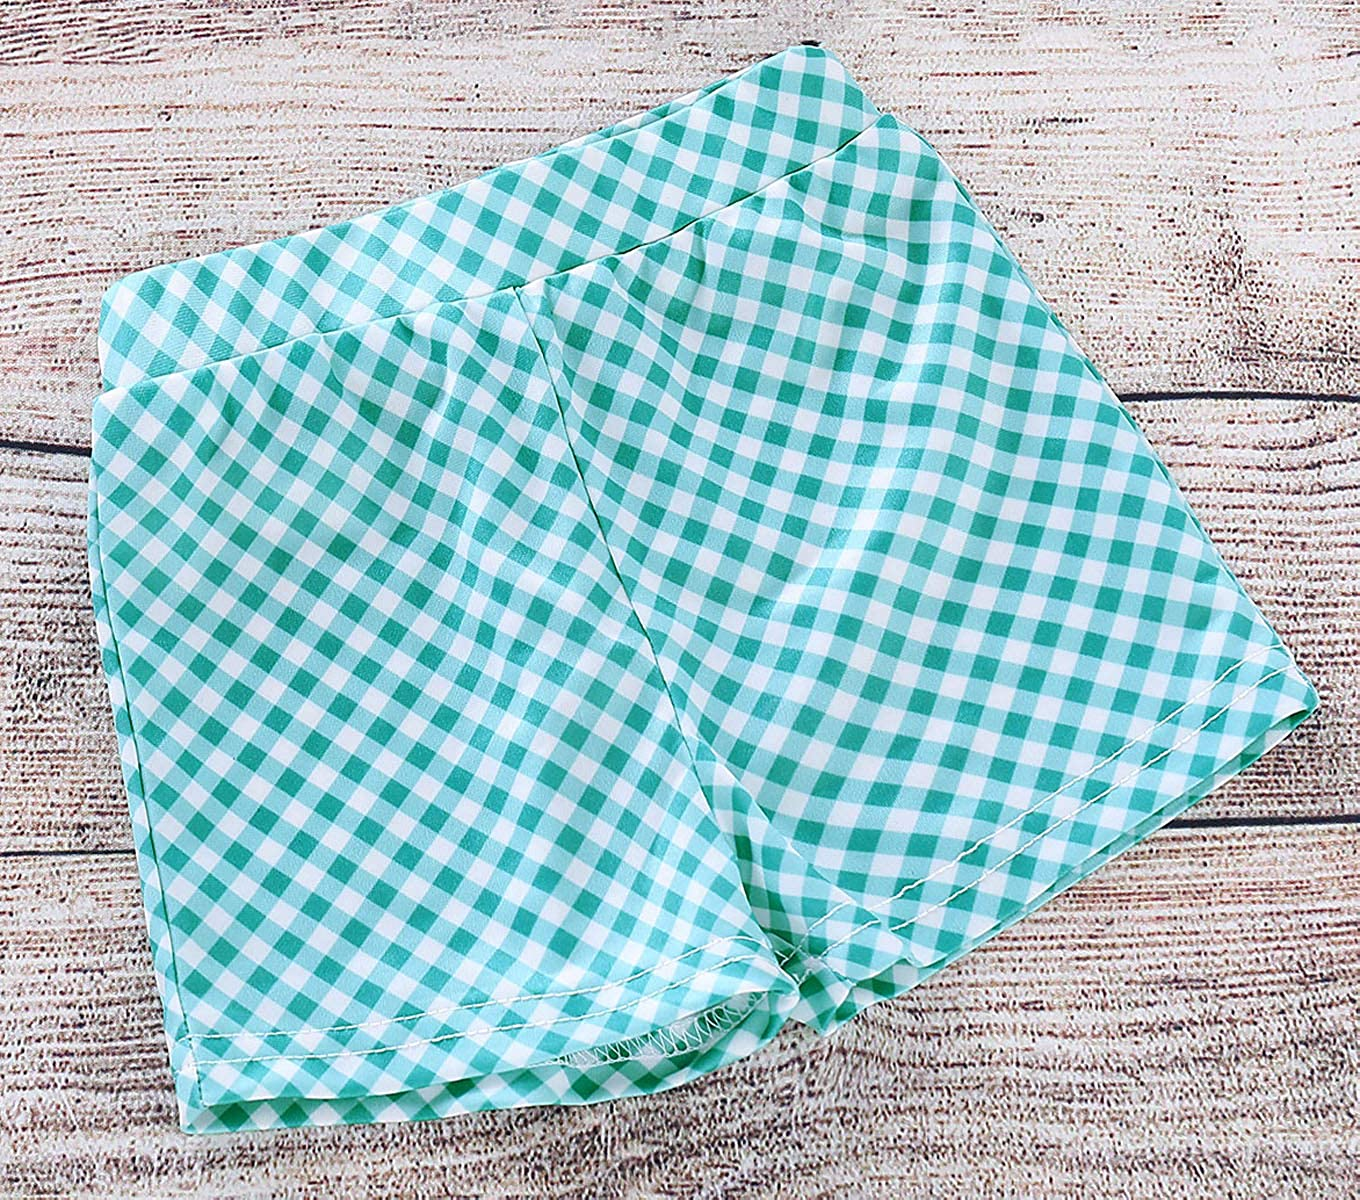 Girls Summer Suit Straps Ruffled Bow Tie Vest Tops Twill Plaid Shorts Suit Beachwear